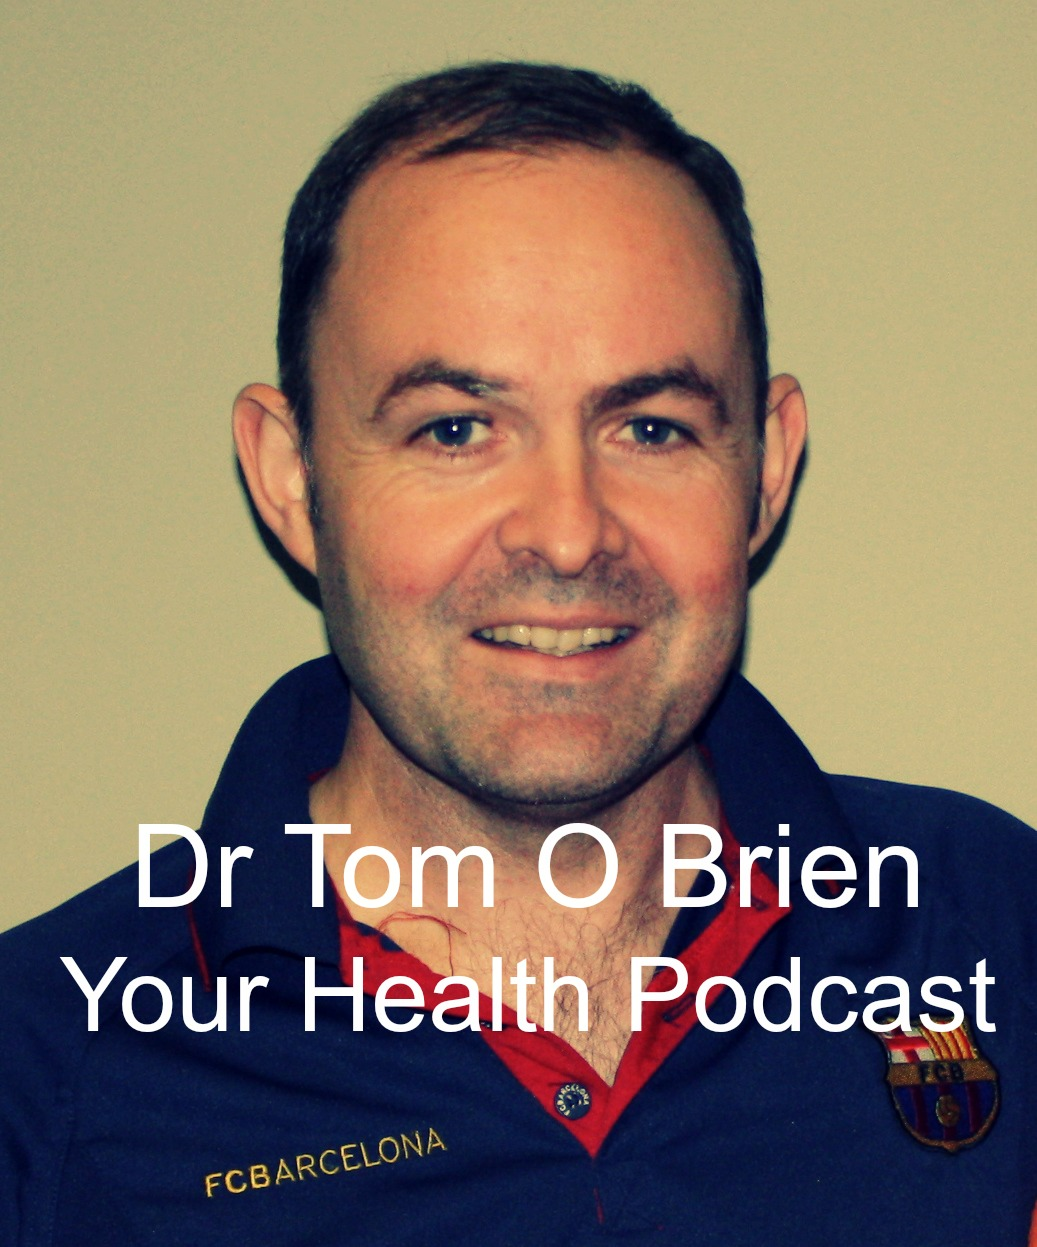 Dr. Tom O'Brien